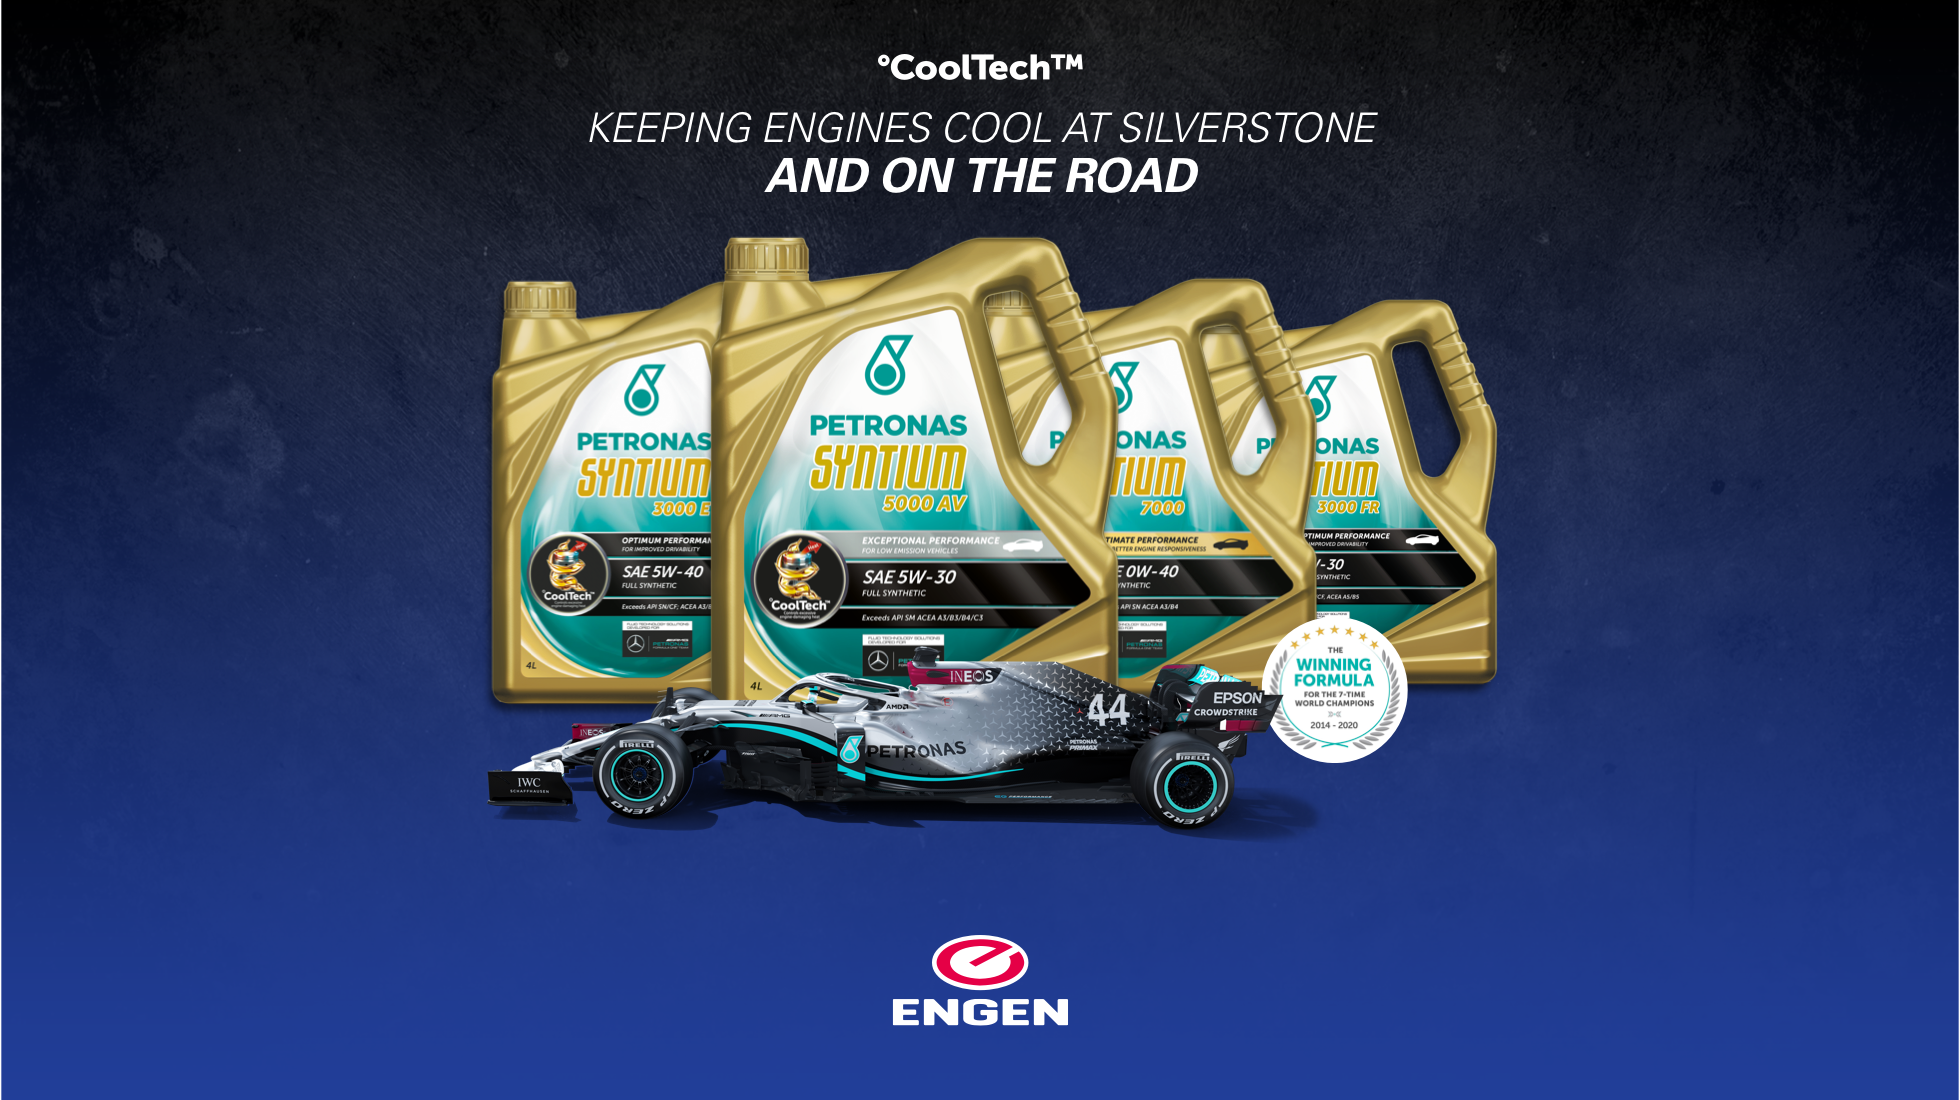 ADVERTORIAL: Give your car the winning performance of the Mercedes-AMG Formula One team